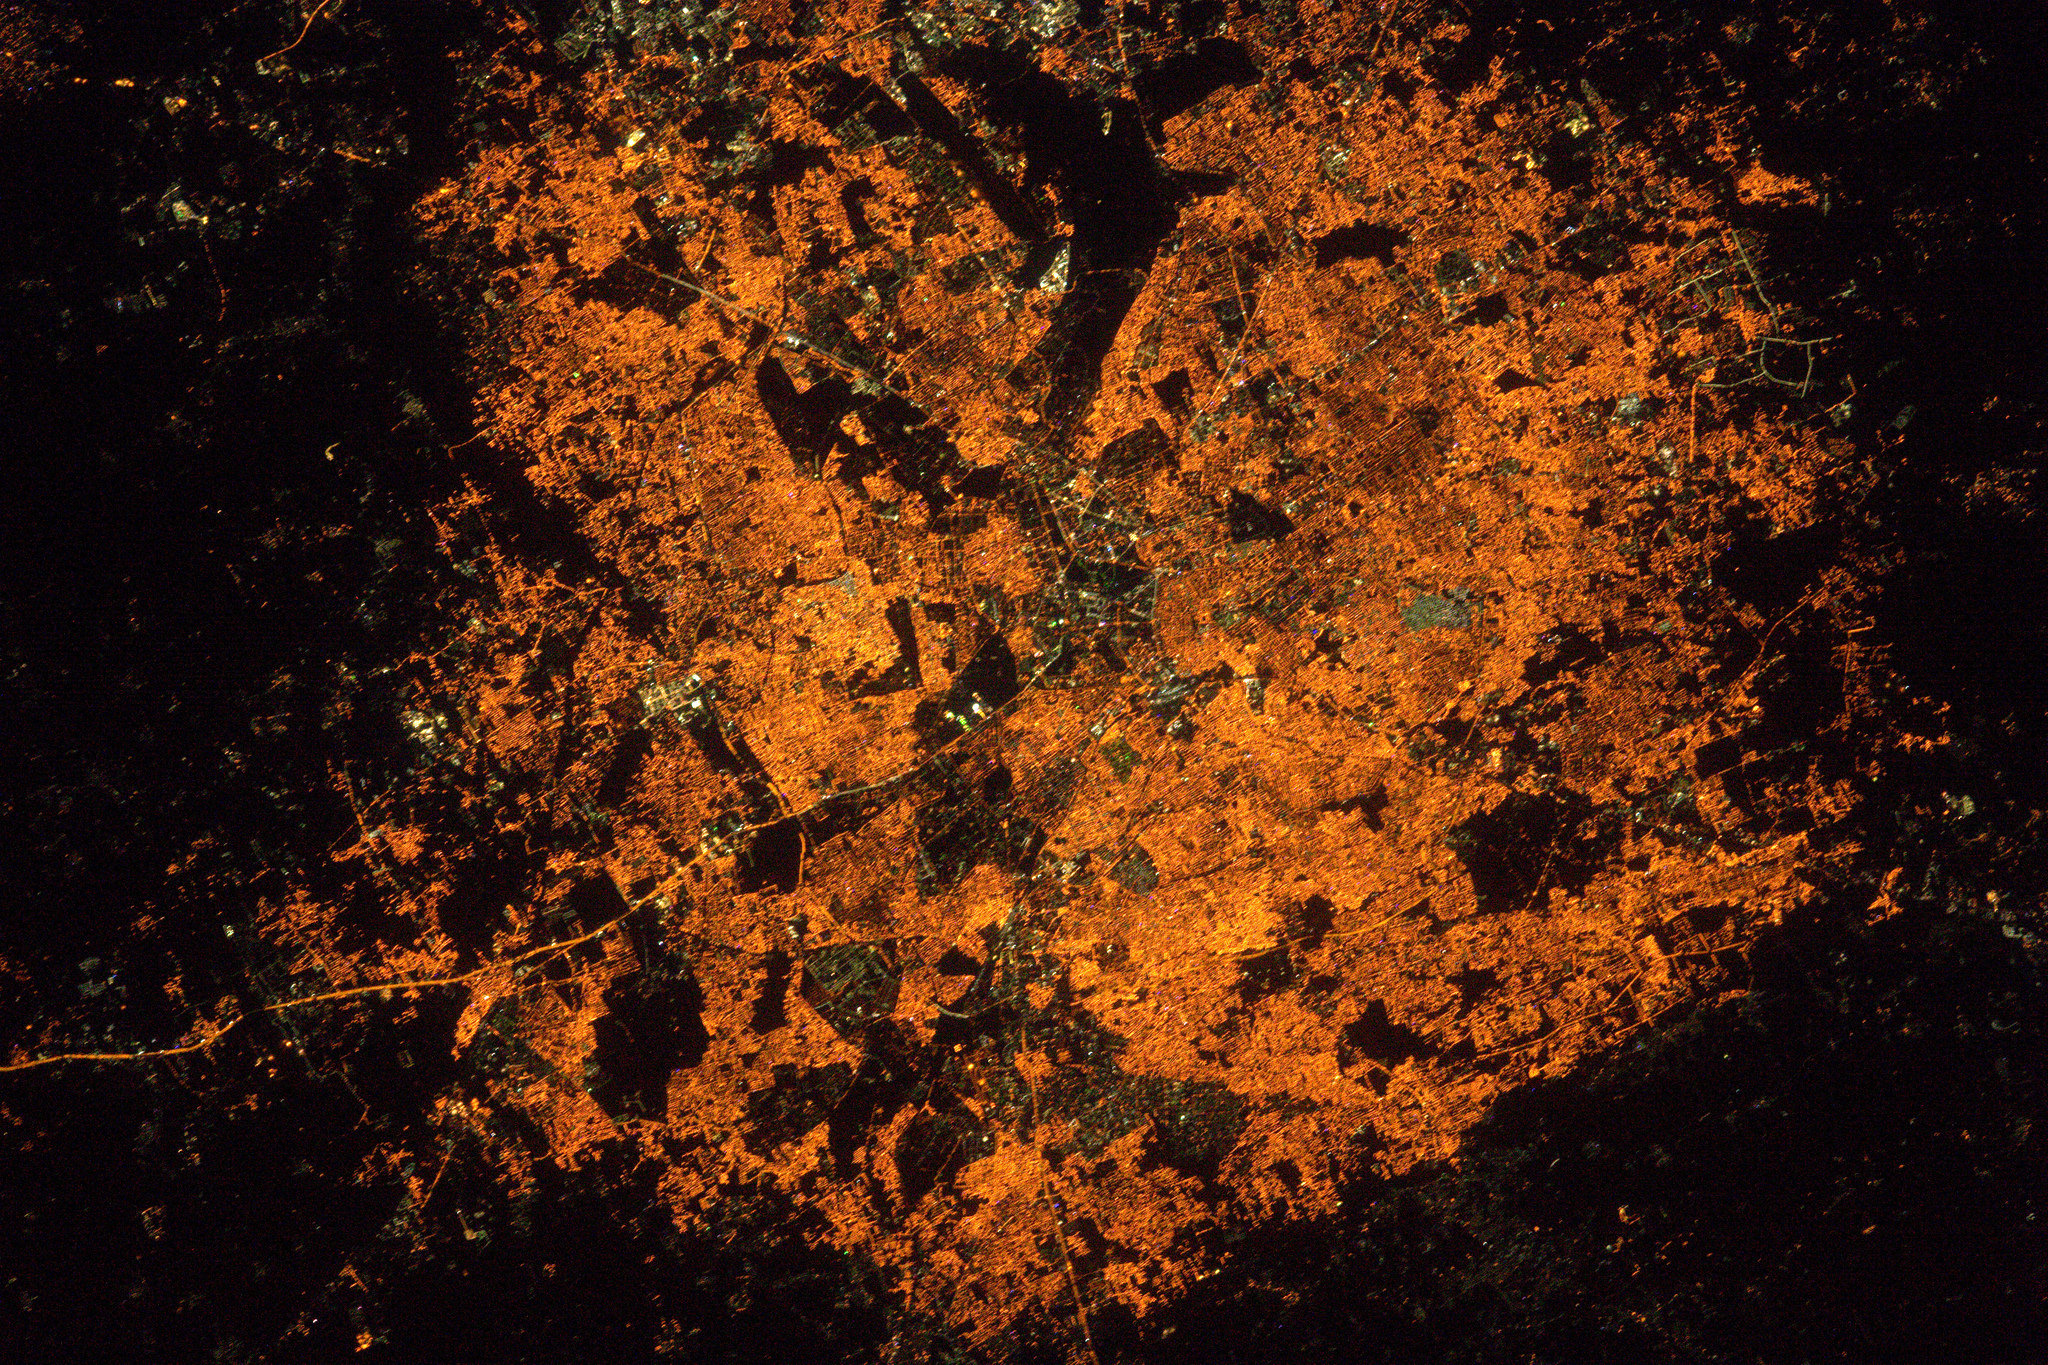 This is a photograph of Bengaluru tweeted by astronaut Thomas Pesquet from space in Feb 2017-India From Space